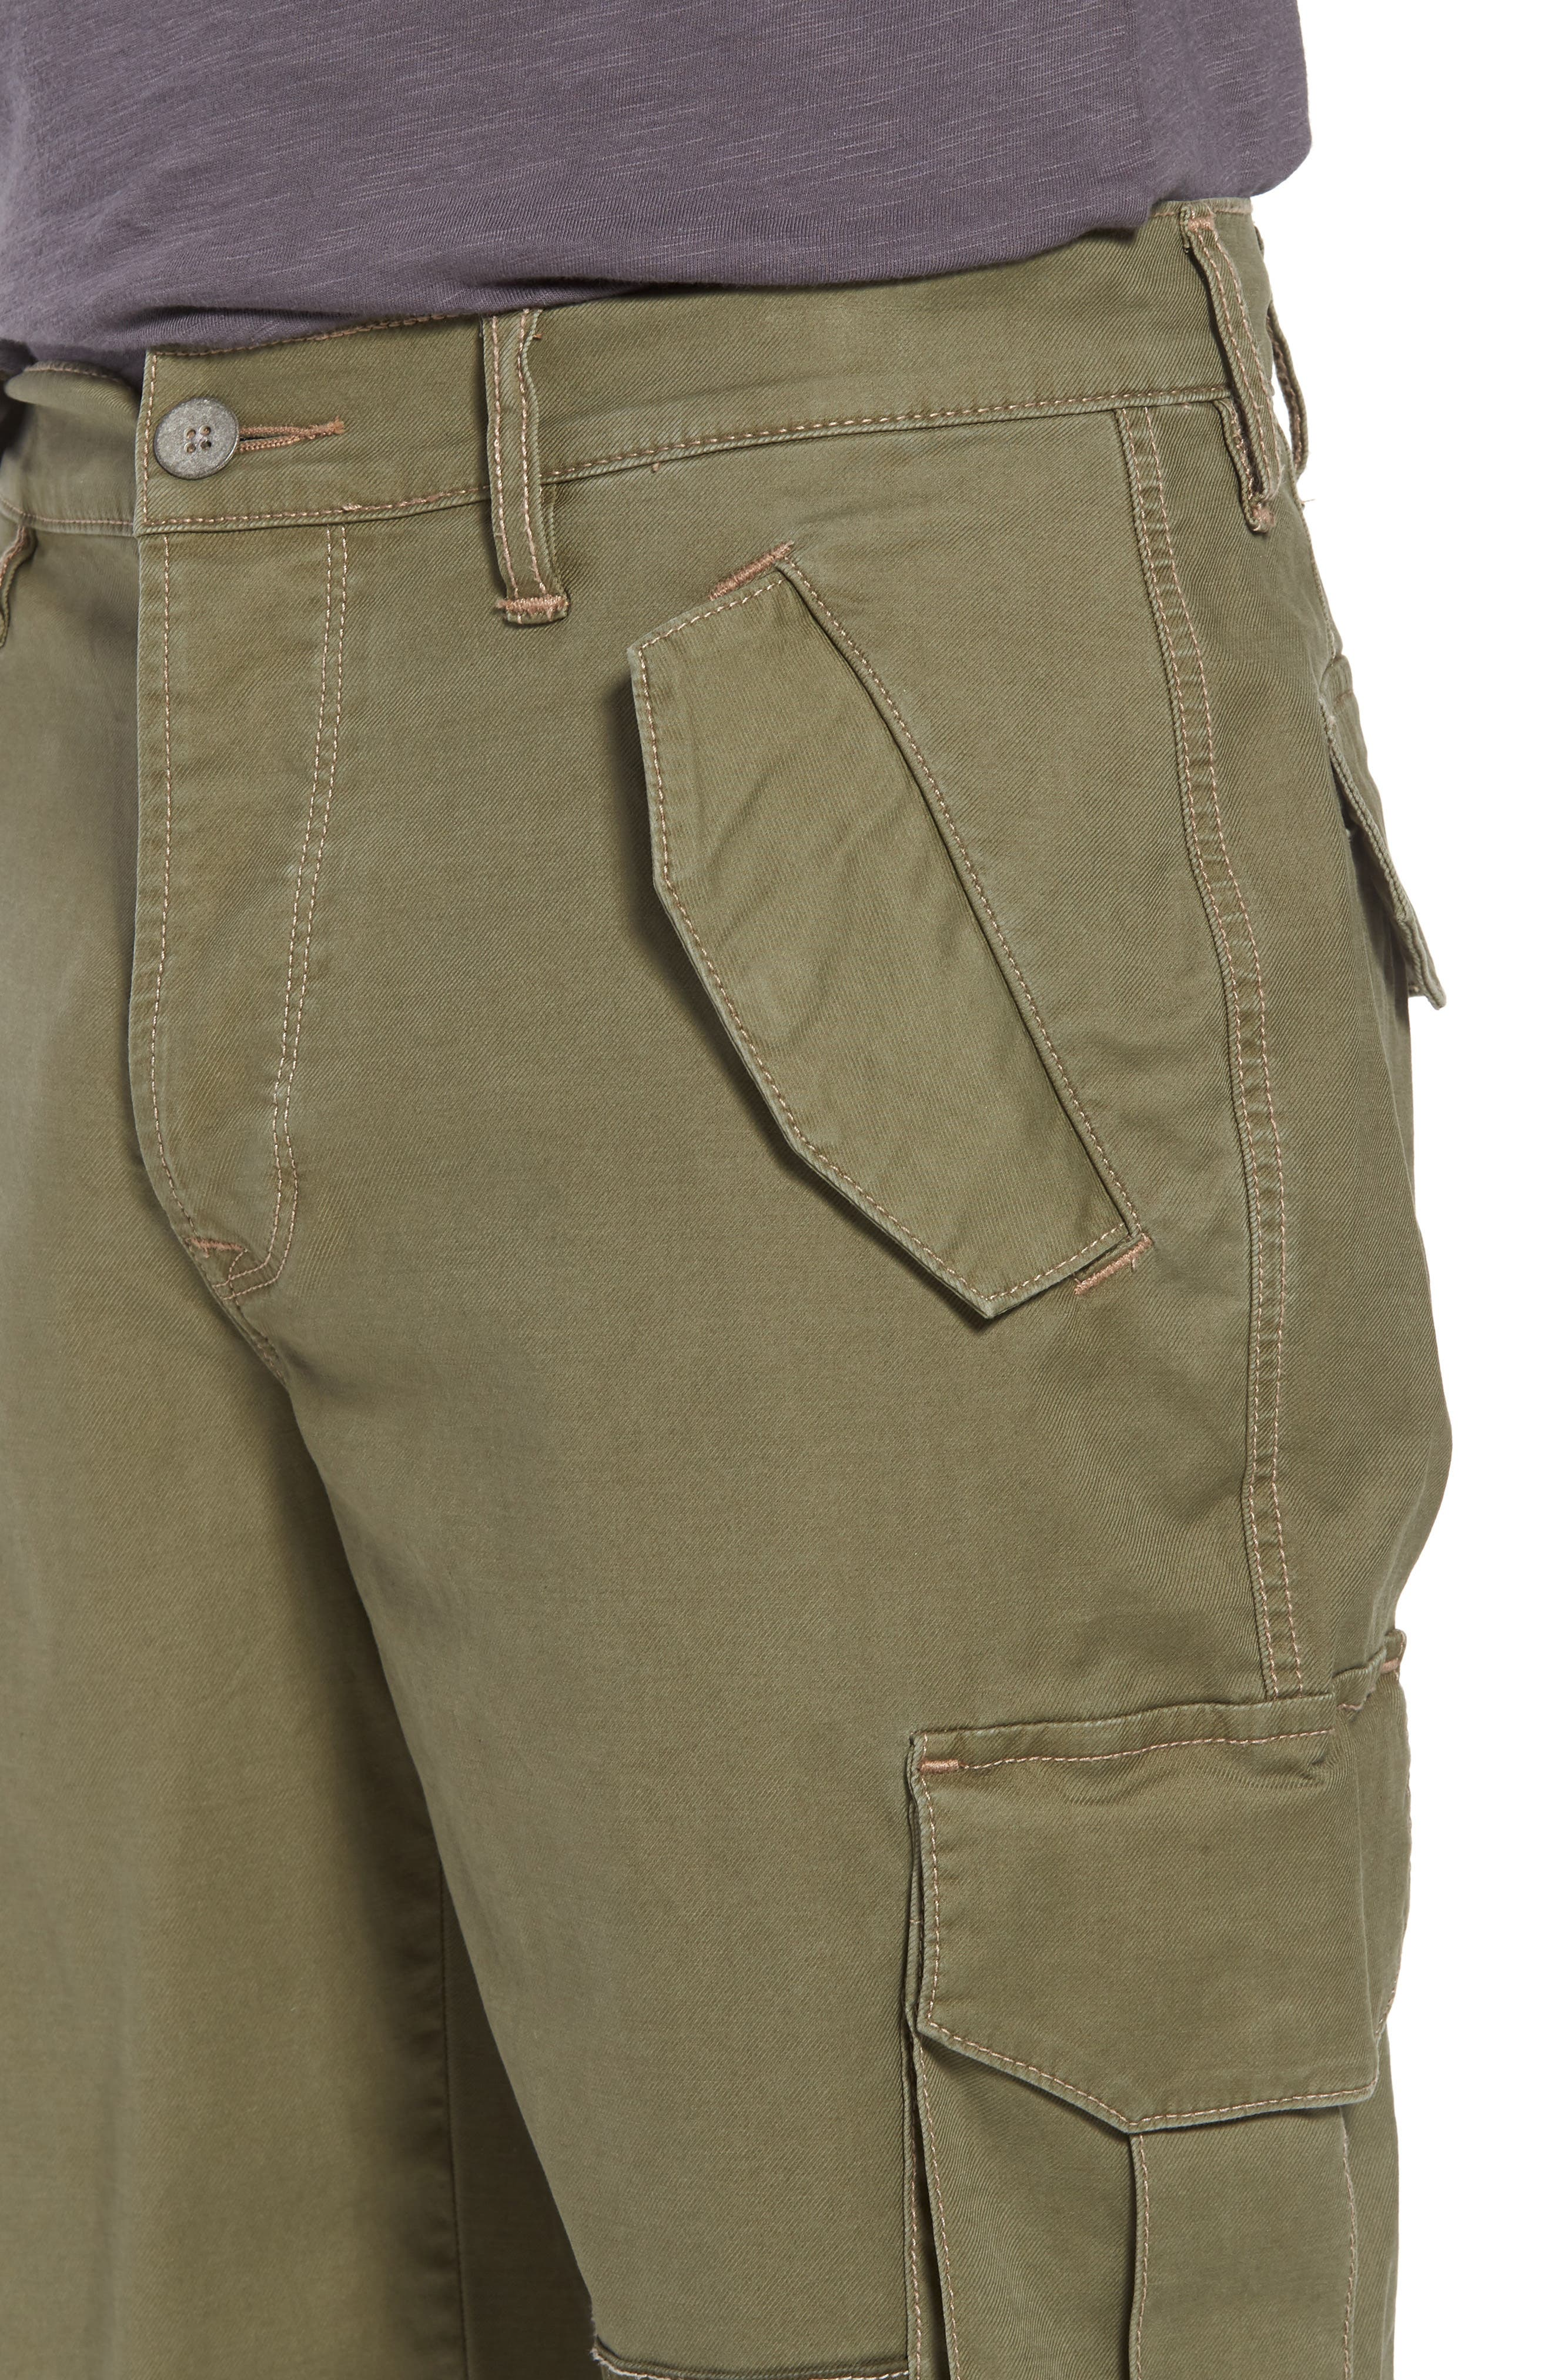 Slim Fit Cargo Shorts,                             Alternate thumbnail 4, color,                             Army Green 2